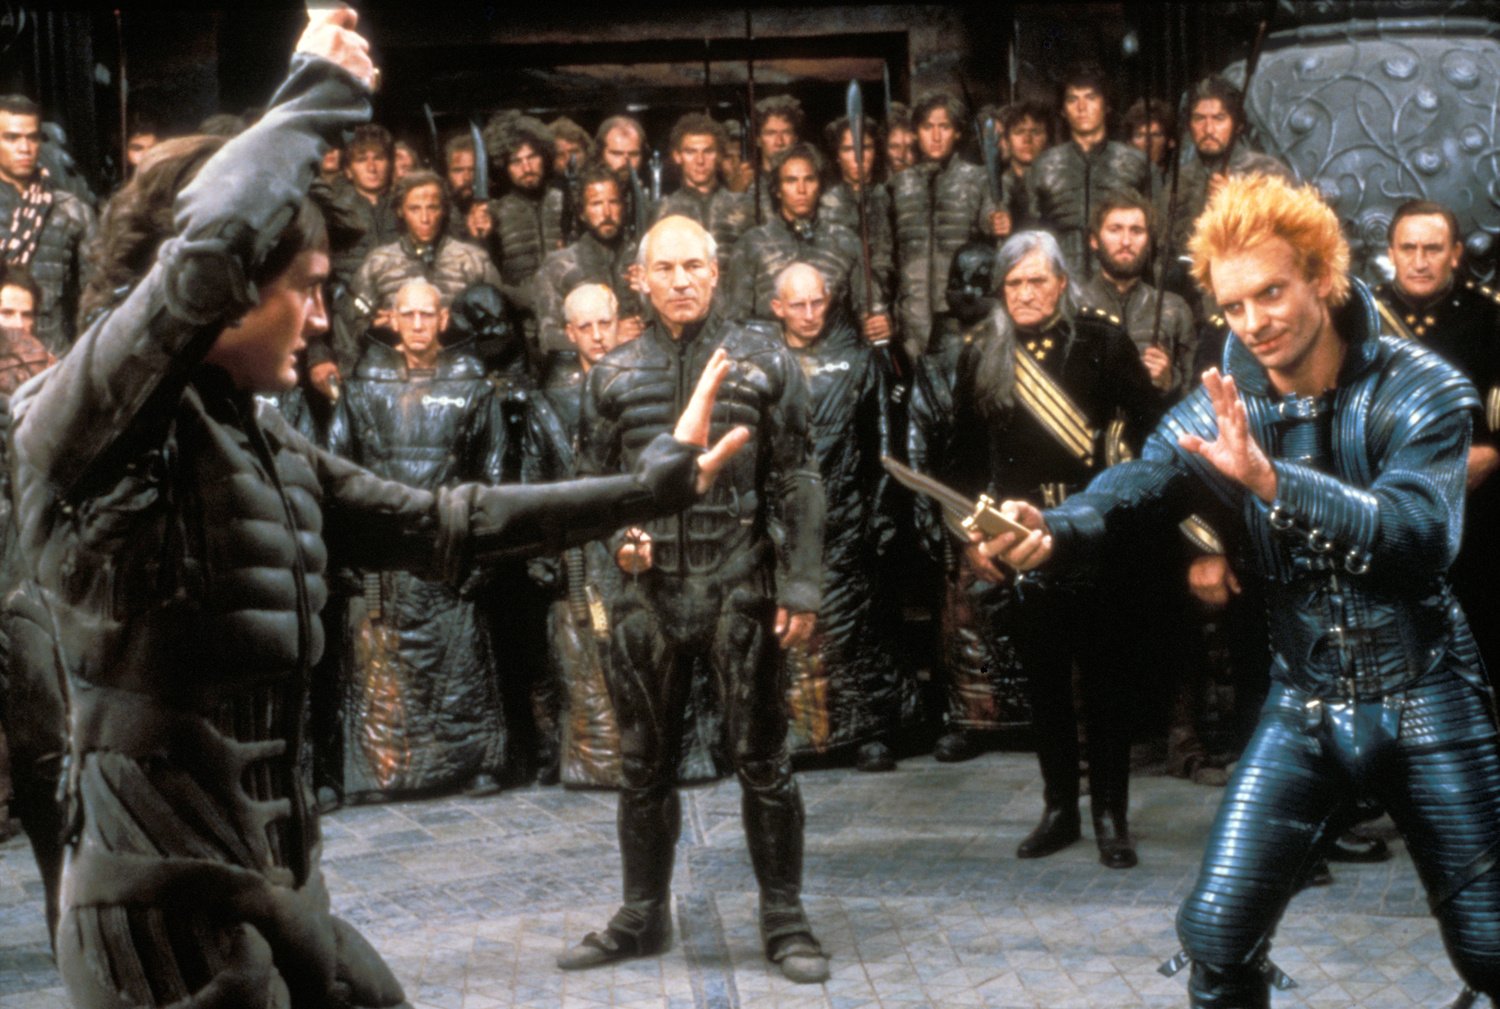 The climactic showdown between Paul (Kyle MacLachlan) and Feyd-Rautha (Sting) with Patrick Stewart as Gurney Hallick Dune (1984)